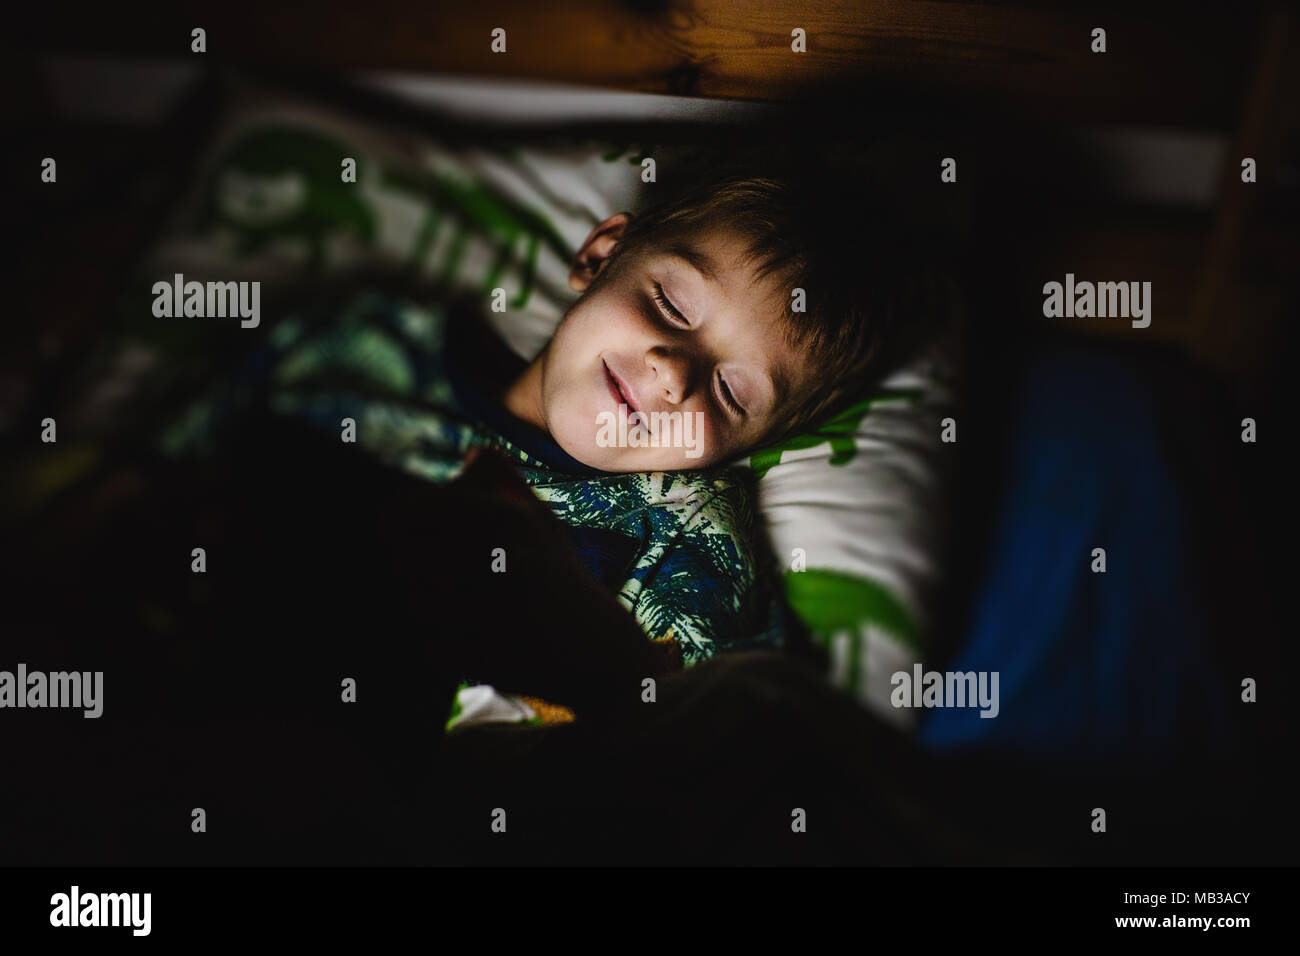 Young boy reading an electronic book with integrated light lying in bed before asleep. Daily technology in children life. Dark background, low light. - Stock Image